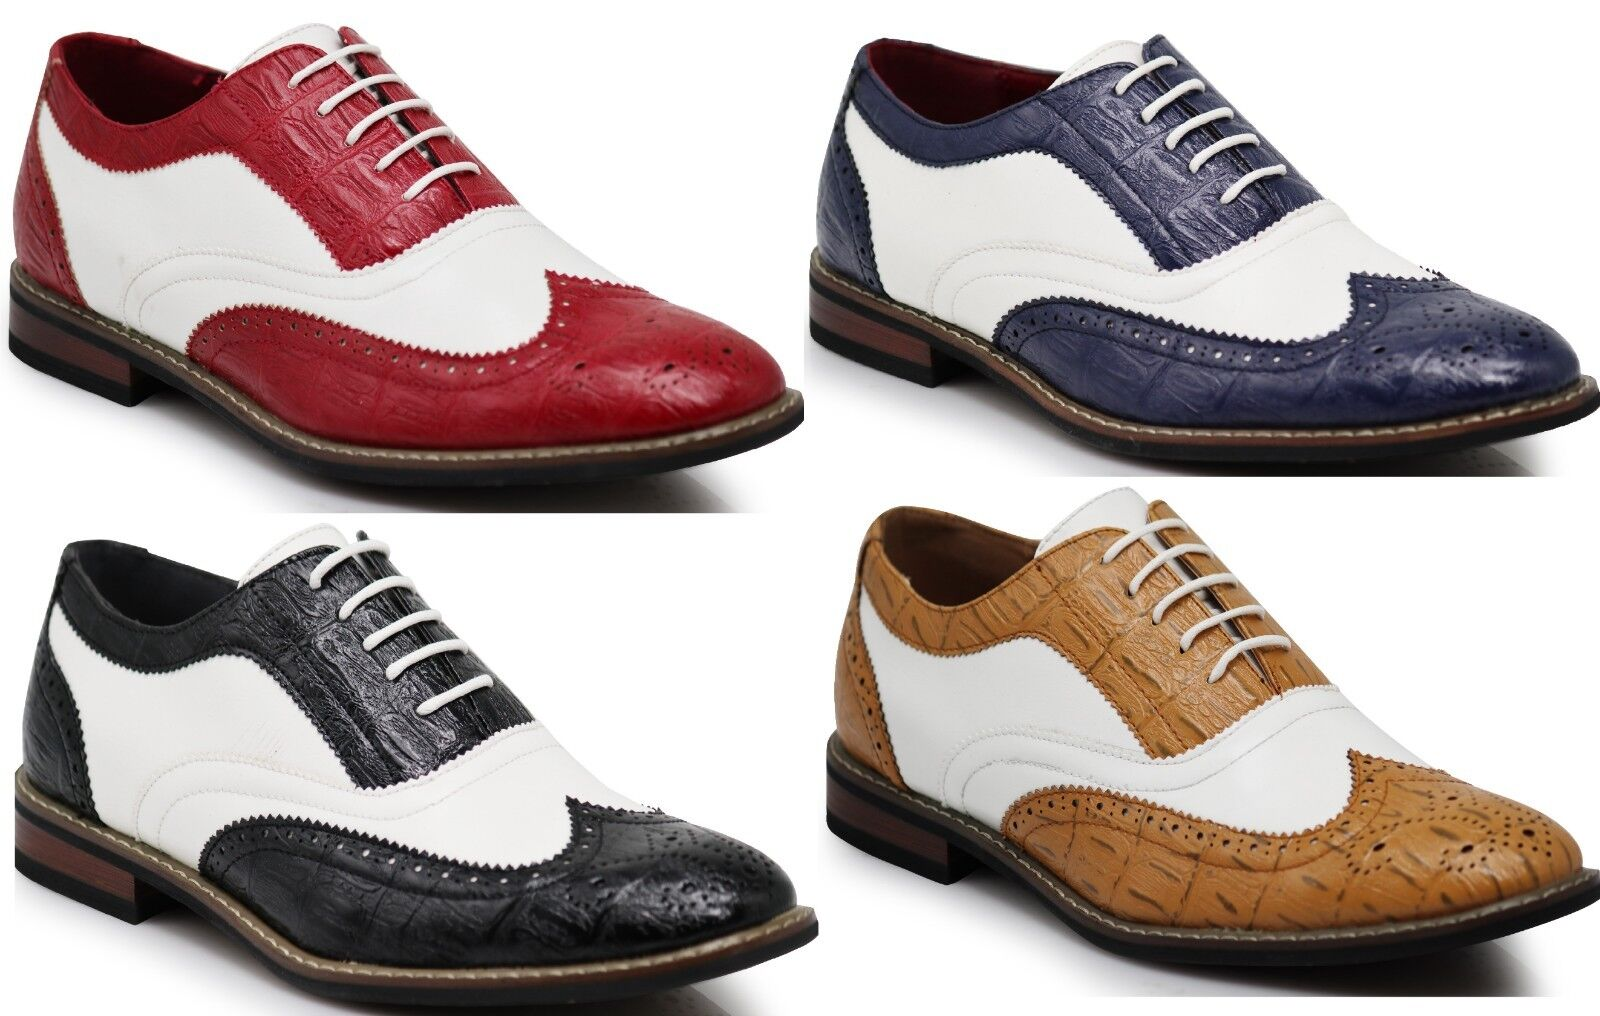 Parrazo Men Dress Shoes Wingtip Oxford 2-tone Leather Lined Lace Up Conrad-3